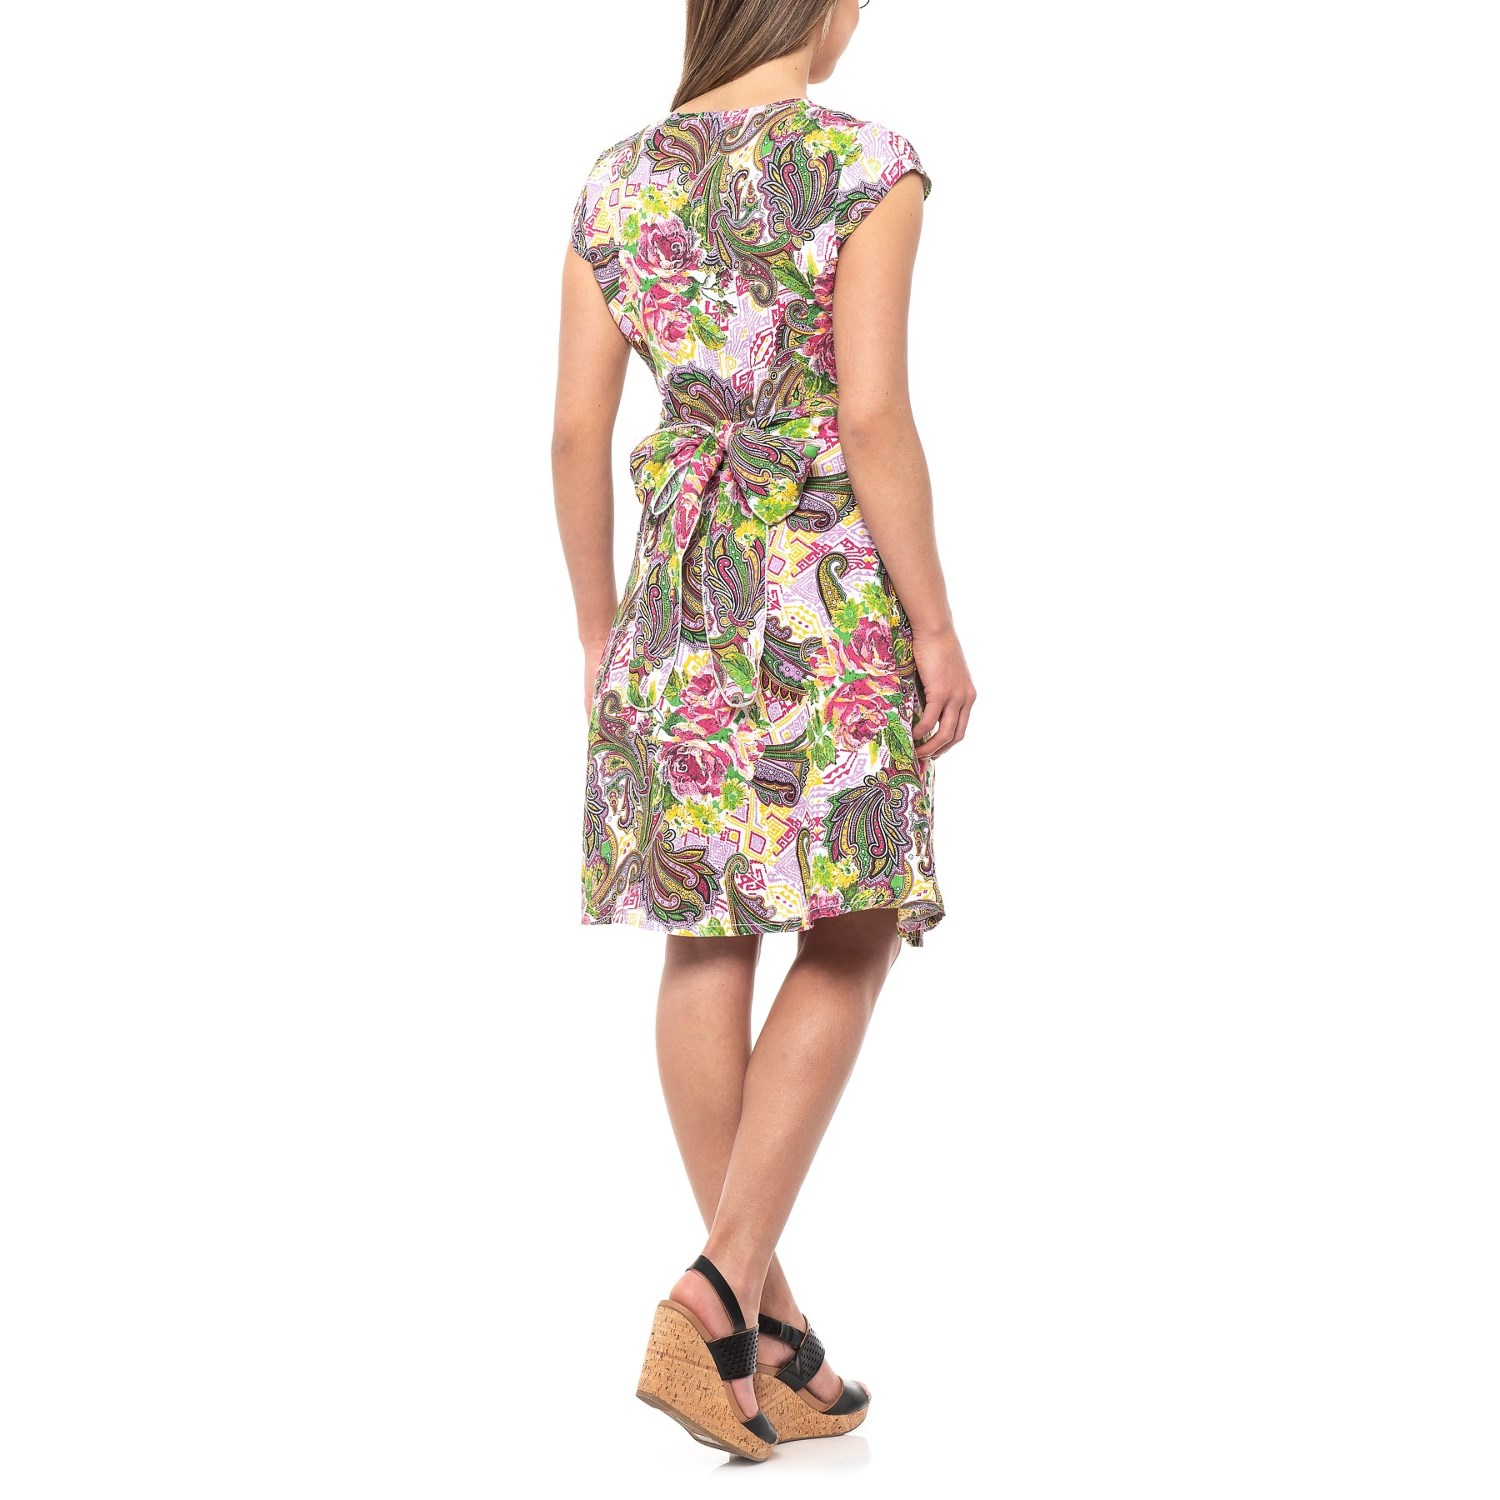 706217a8bf ... 543NA 2 Alessia Pacini Made in Italy Scattered Floral Printed Shirt  Dress - Cap Sleeve (For